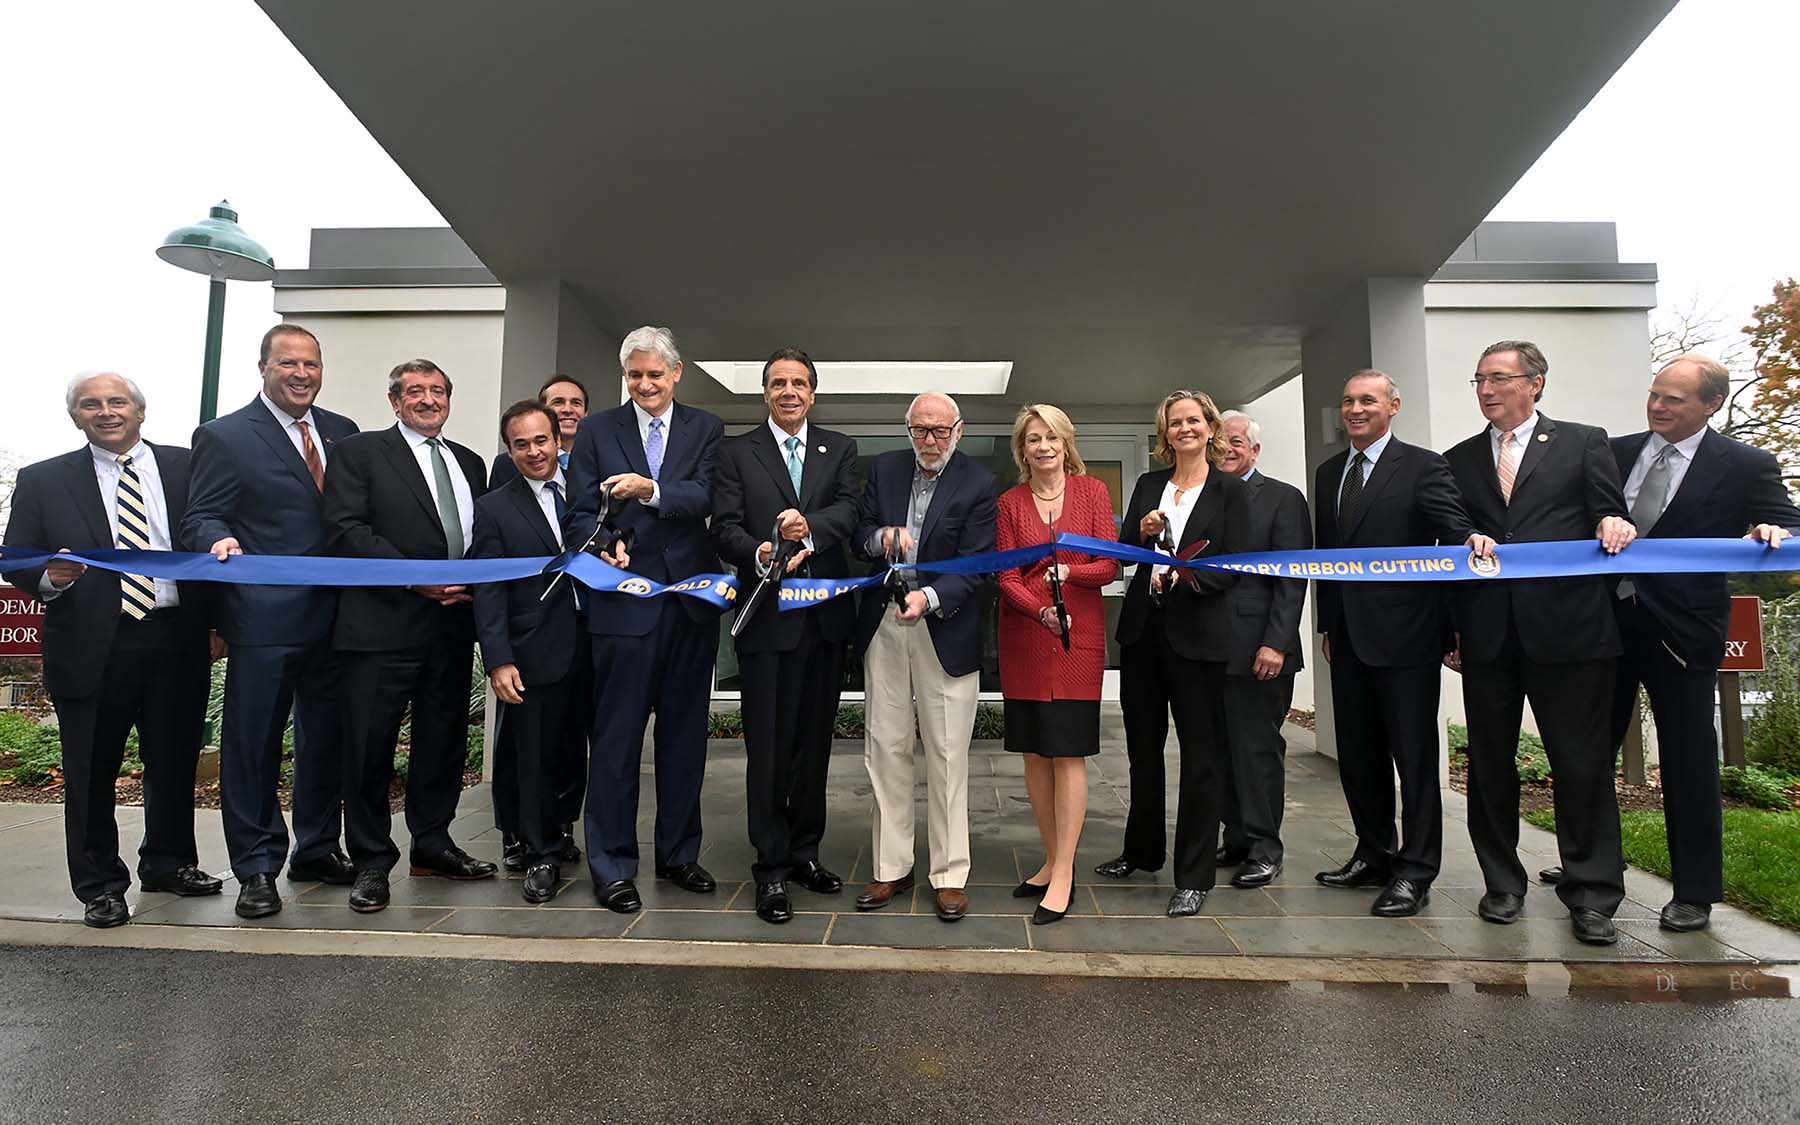 photo of Andrew Cuomo, Bruce Stillman and others cutting the ribbon in front of Demerec building